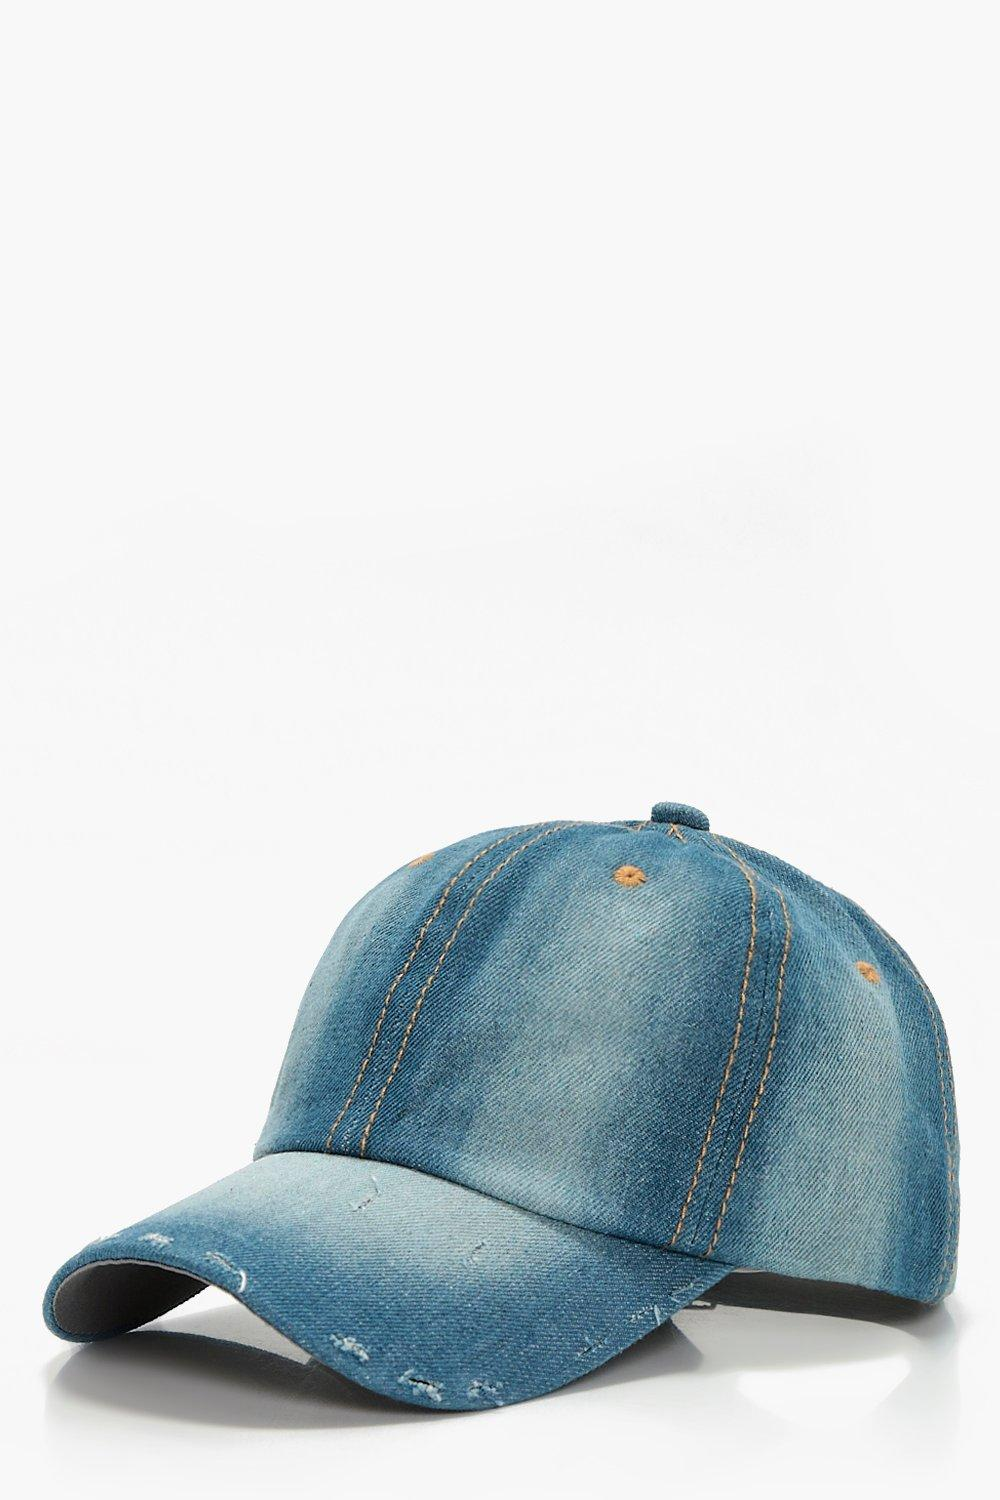 Distressed Denim Cap - blue - Lucy Distressed Deni